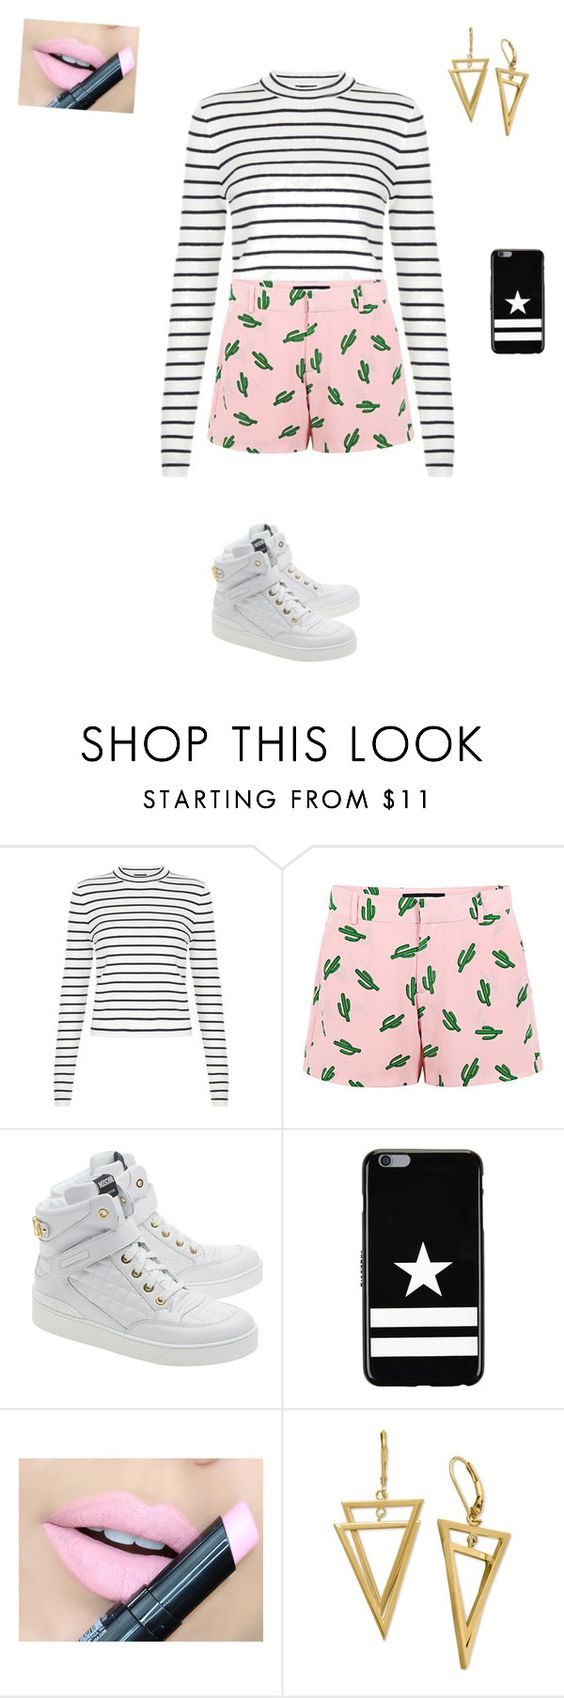 """Too painful"" by myghostbusters ❤ liked on Polyvore featuring American Retro, Moschino, Givenchy, Fiebiger, women's clothing, women, female, woman, misses and juniors"